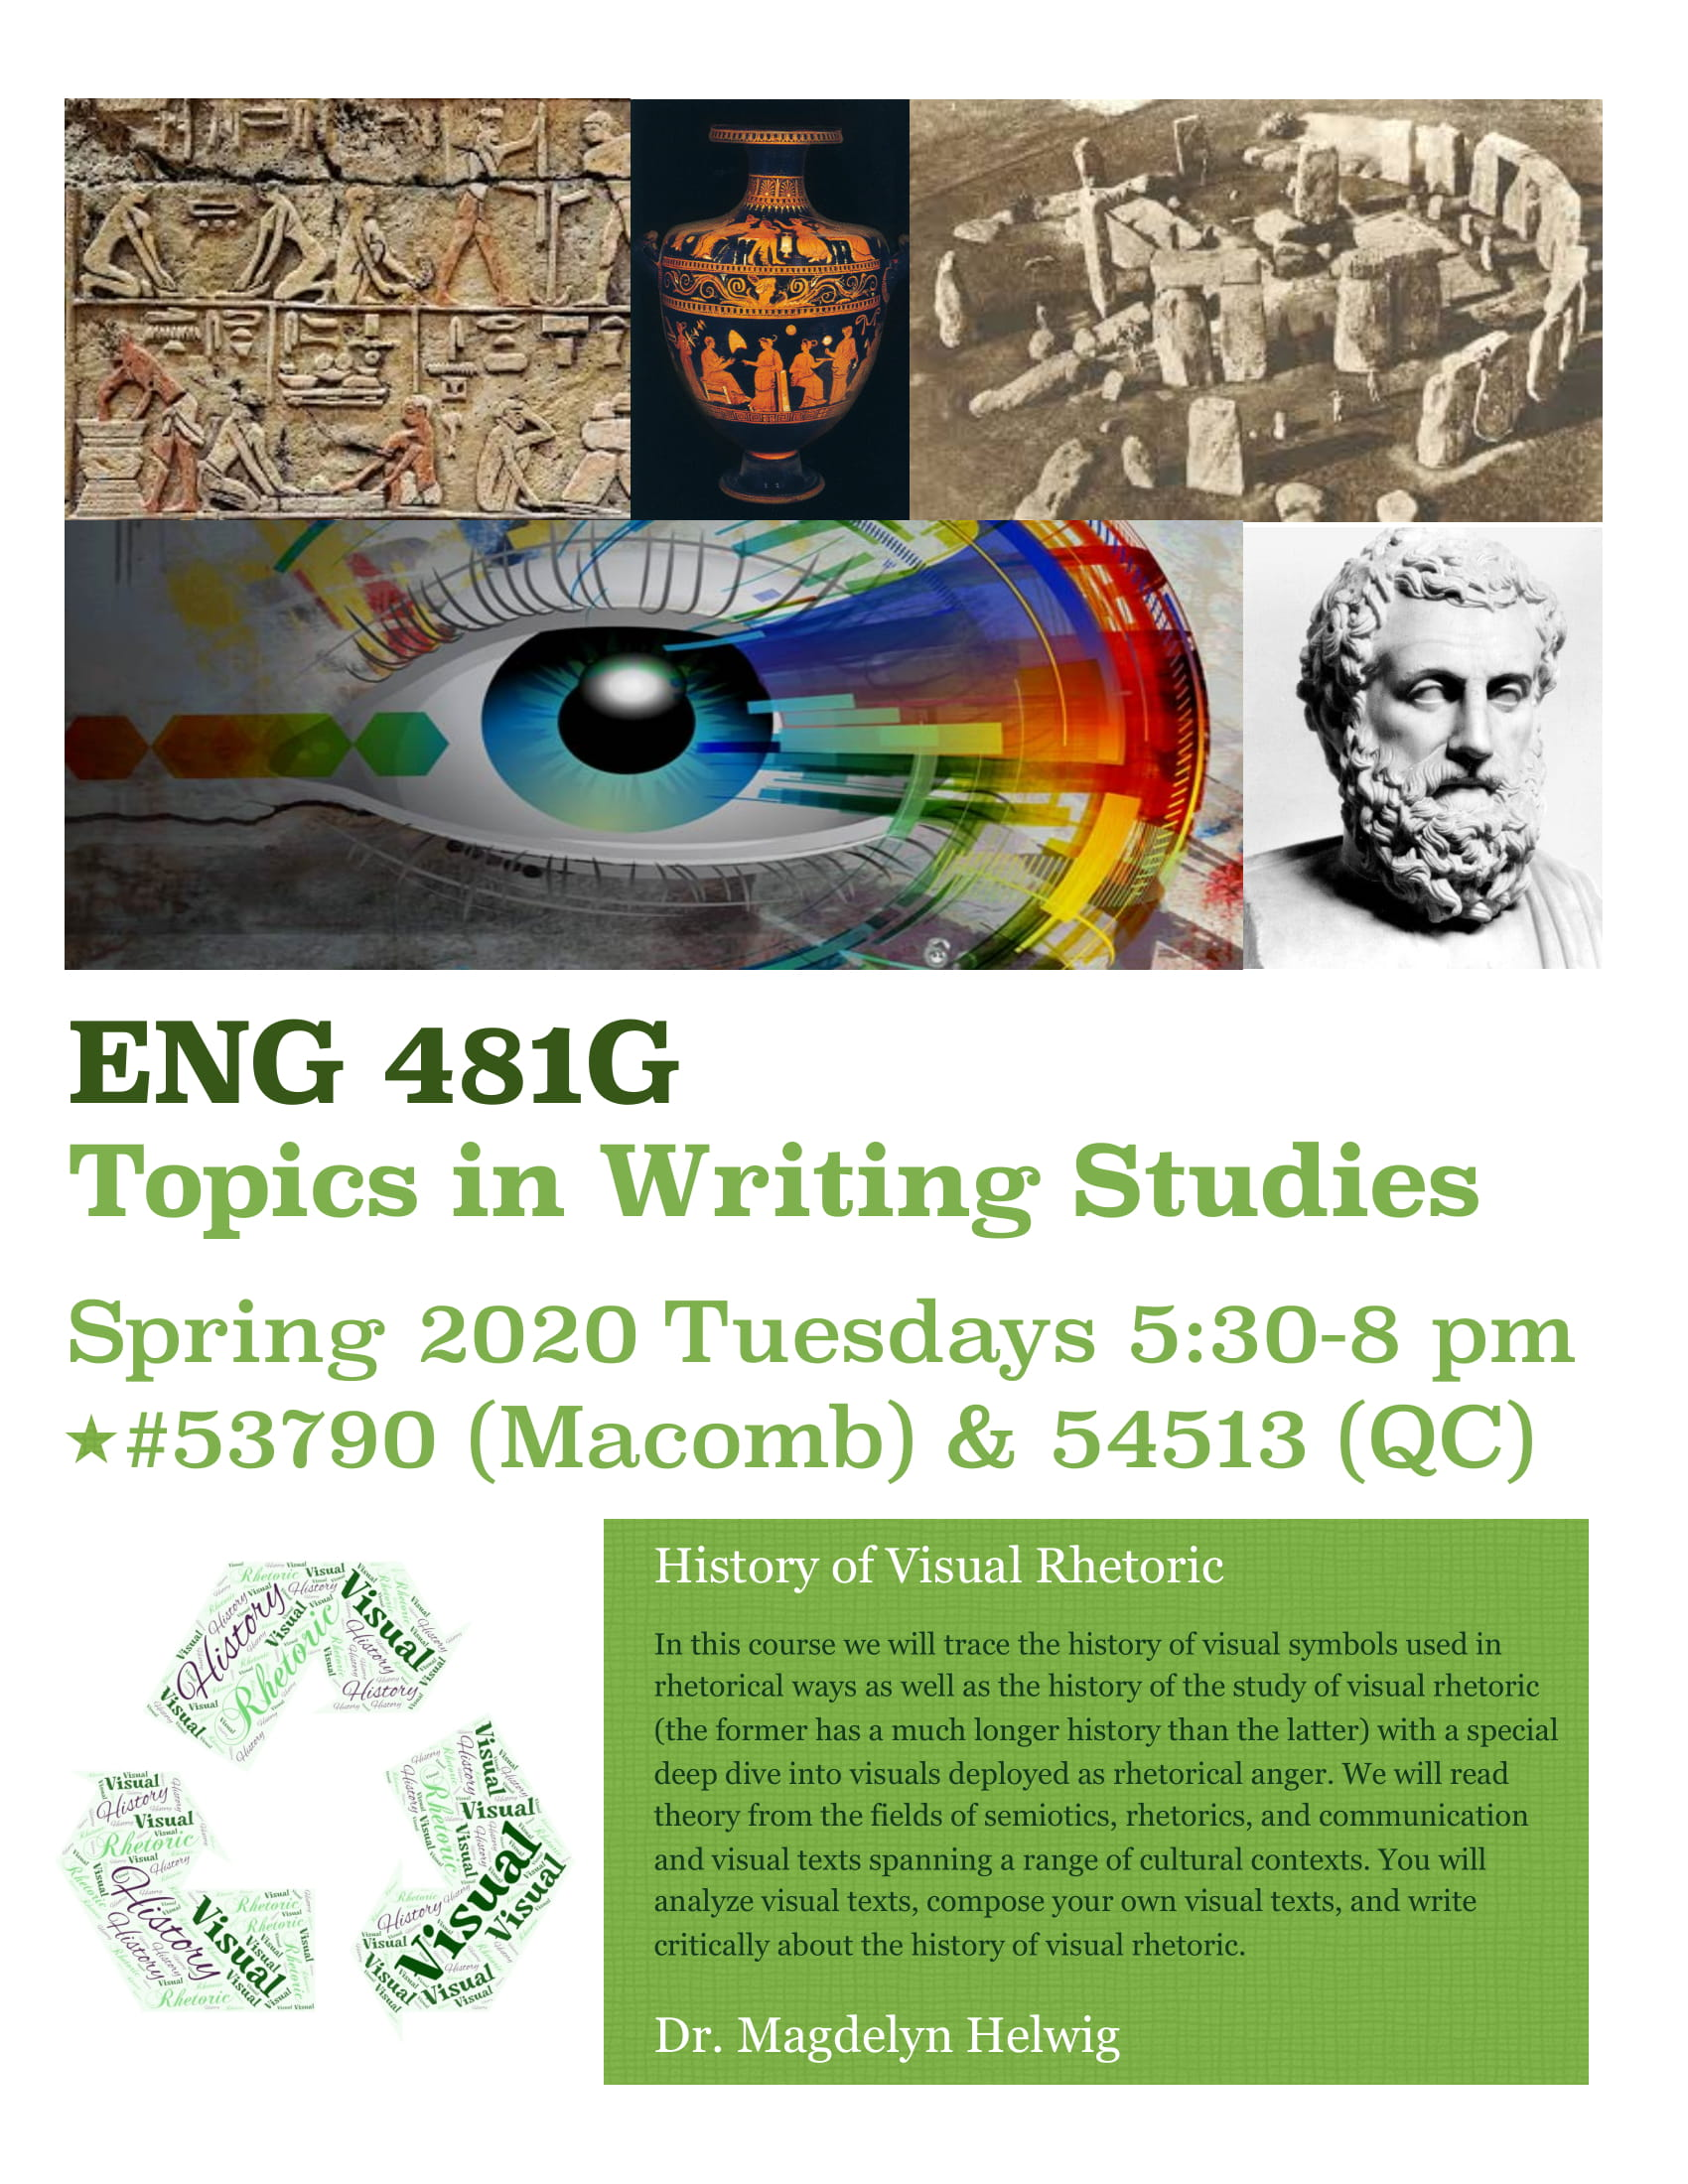 Spring 2020 Course Description